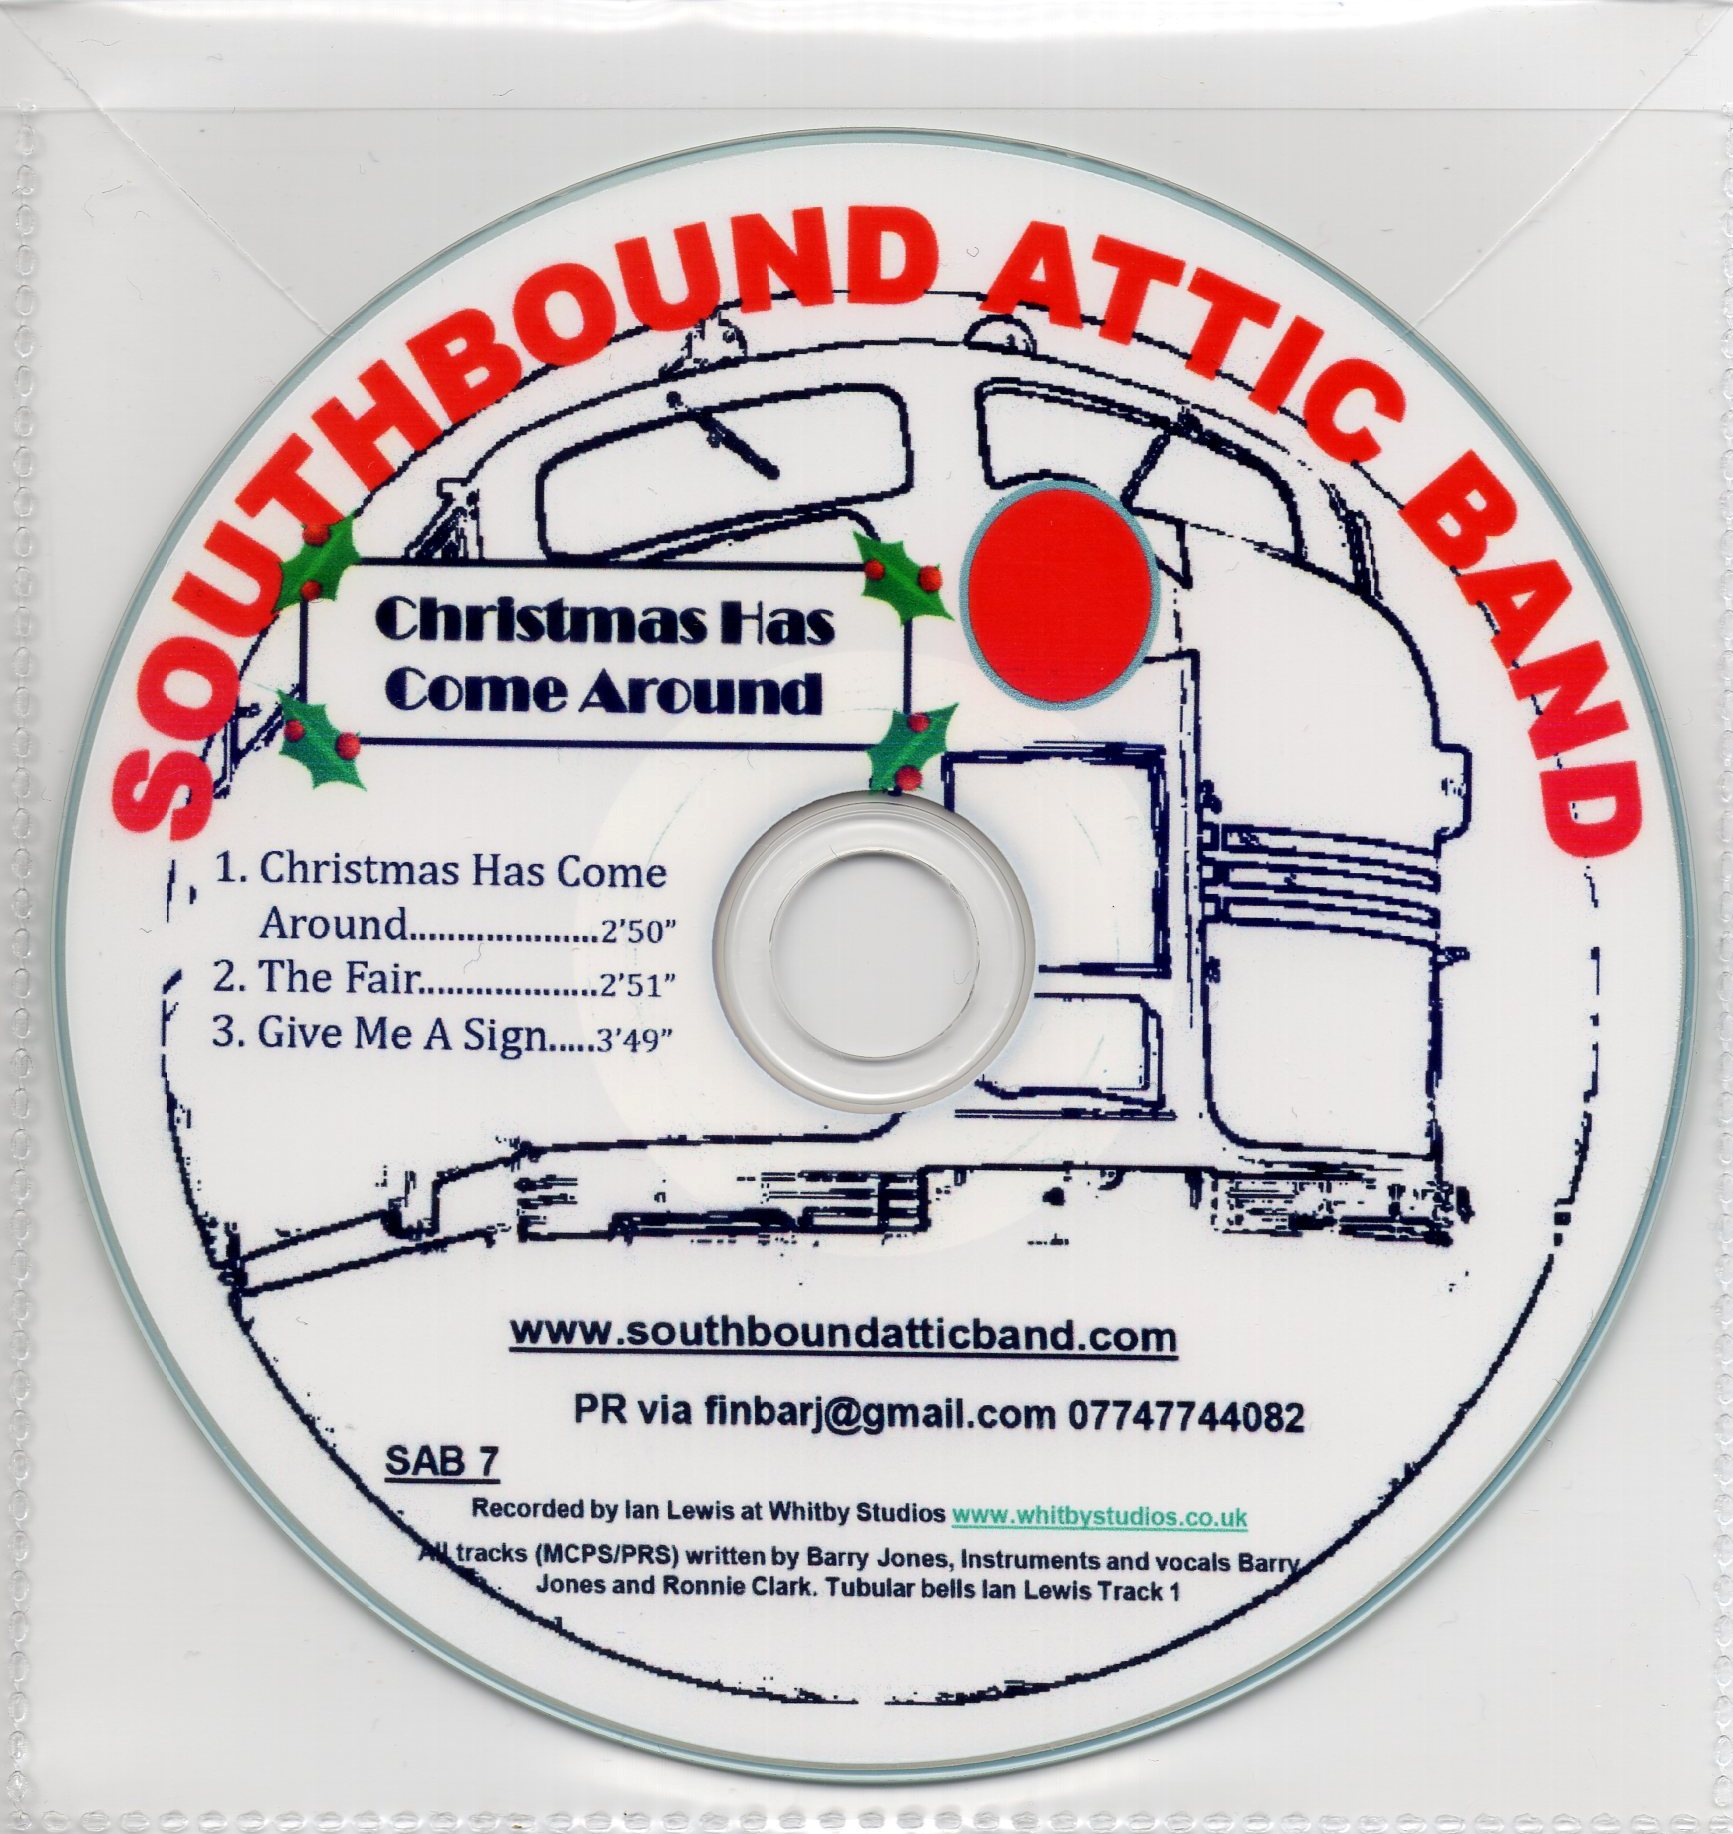 Christmas Has Come Around EP | Southbound Attic Band